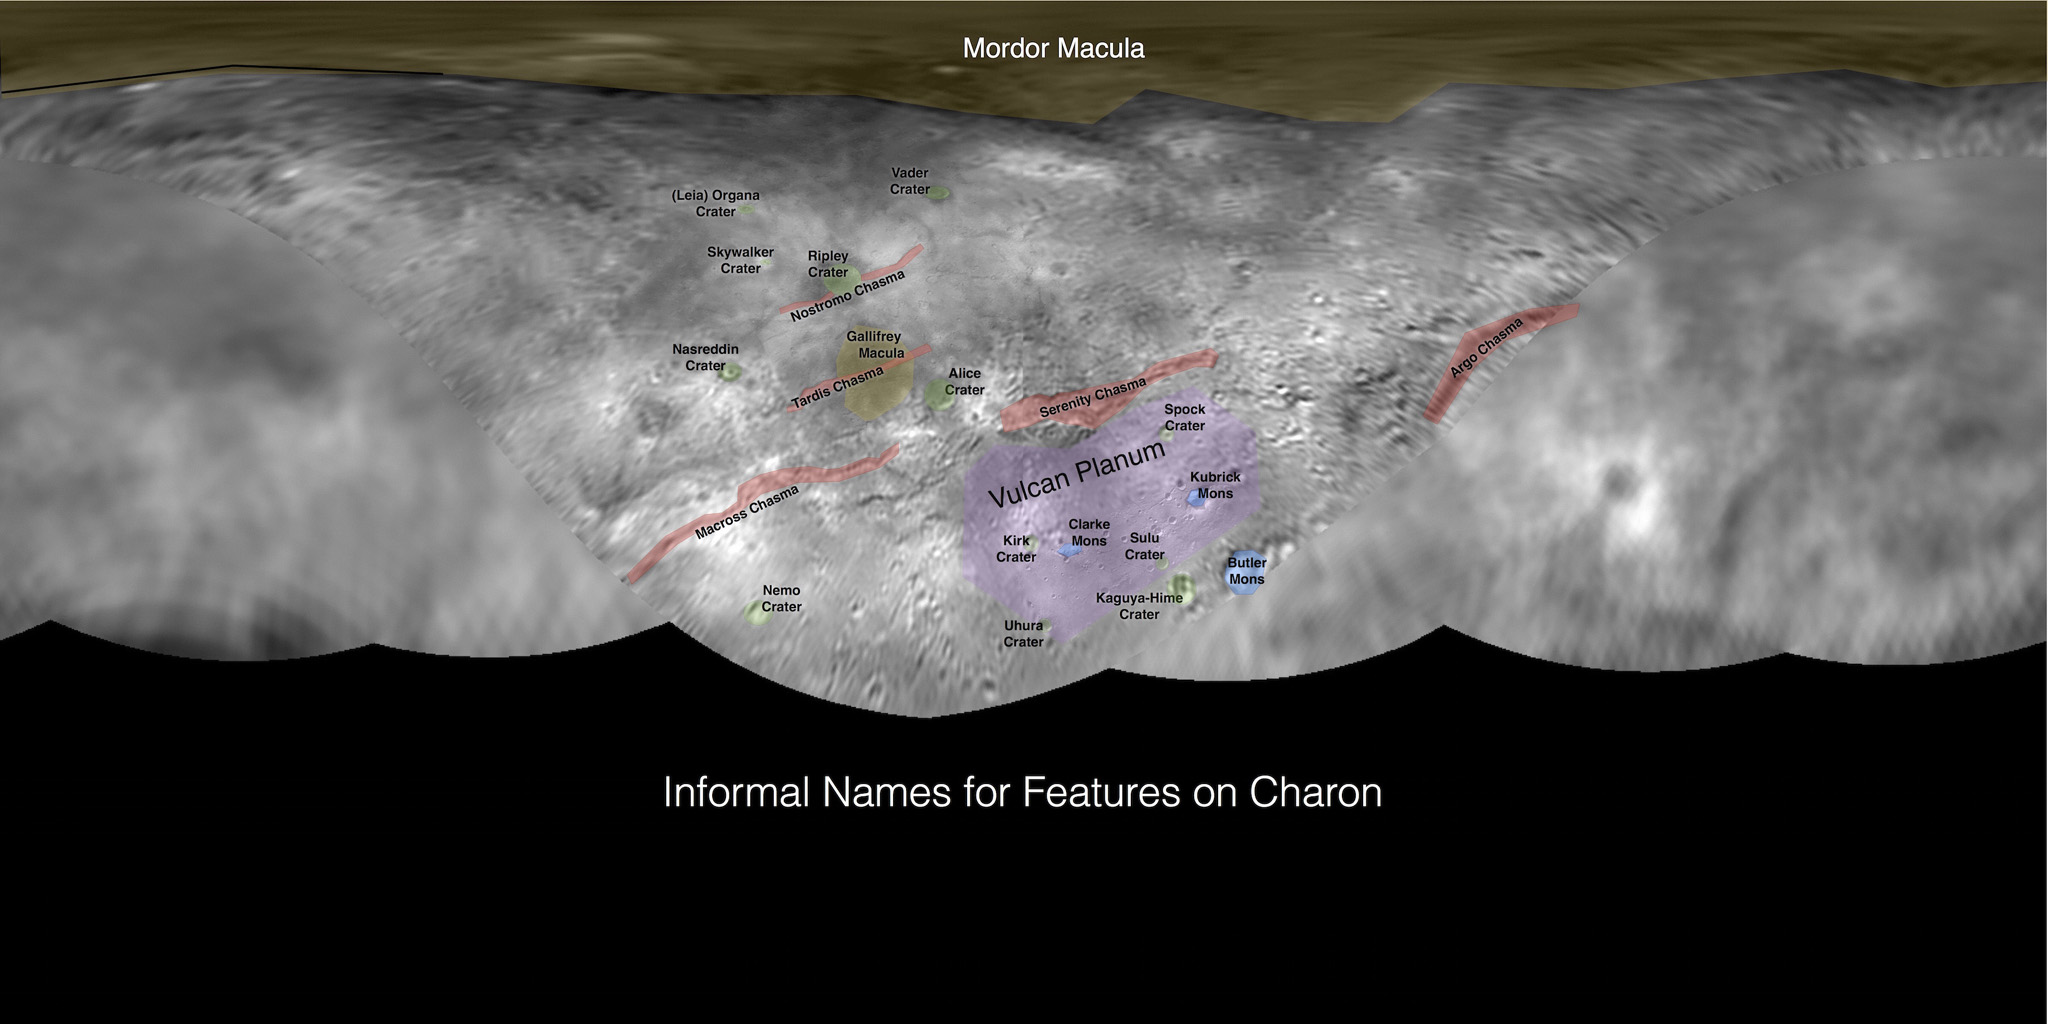 This image contains the initial, informal names being used by NASA's New Horizons team for the features and regions on the surface of Pluto's largest moon, Charon. These names have not yet been approved by the International Astronomical Union (IAU).